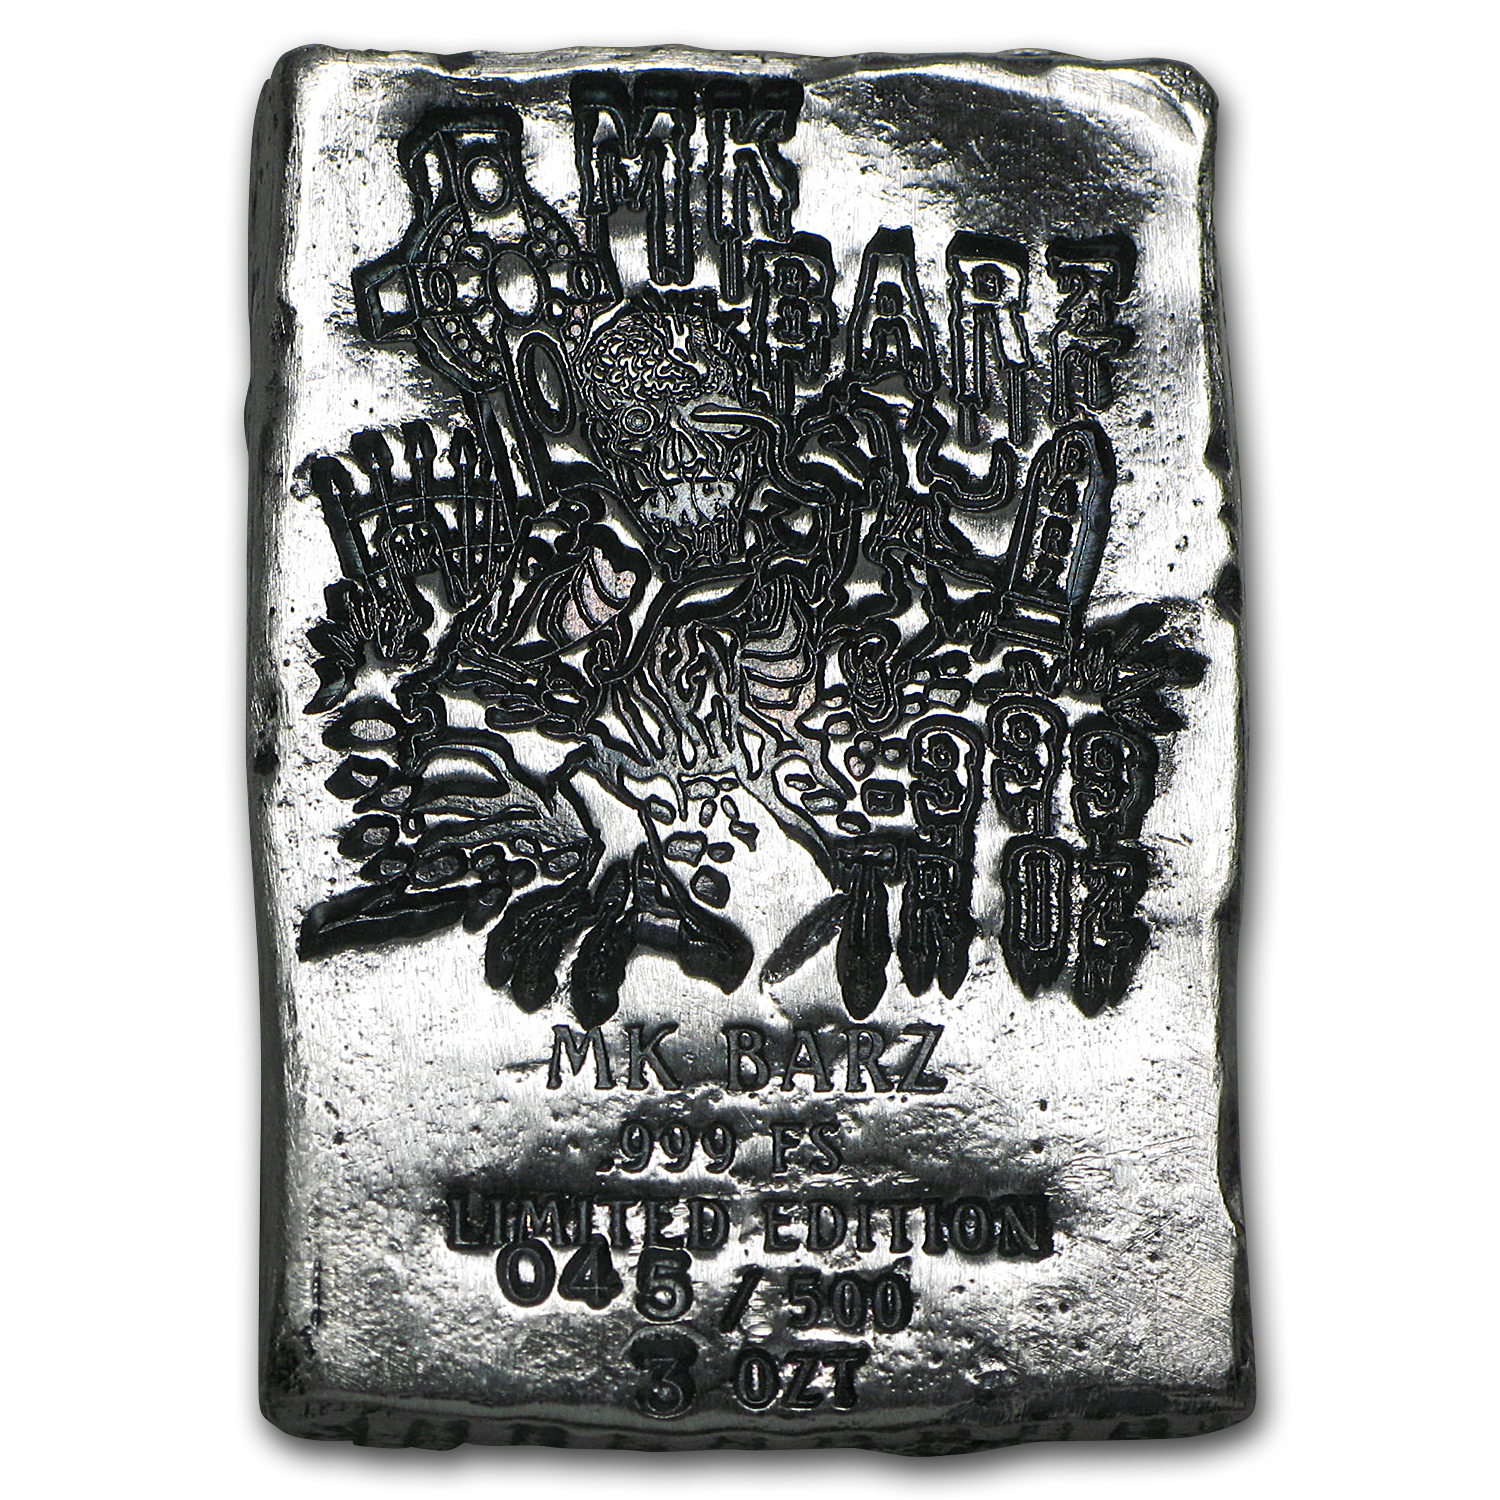 3 oz Silver Bar - Zombie (Limited Edition, Risen From the Grave)